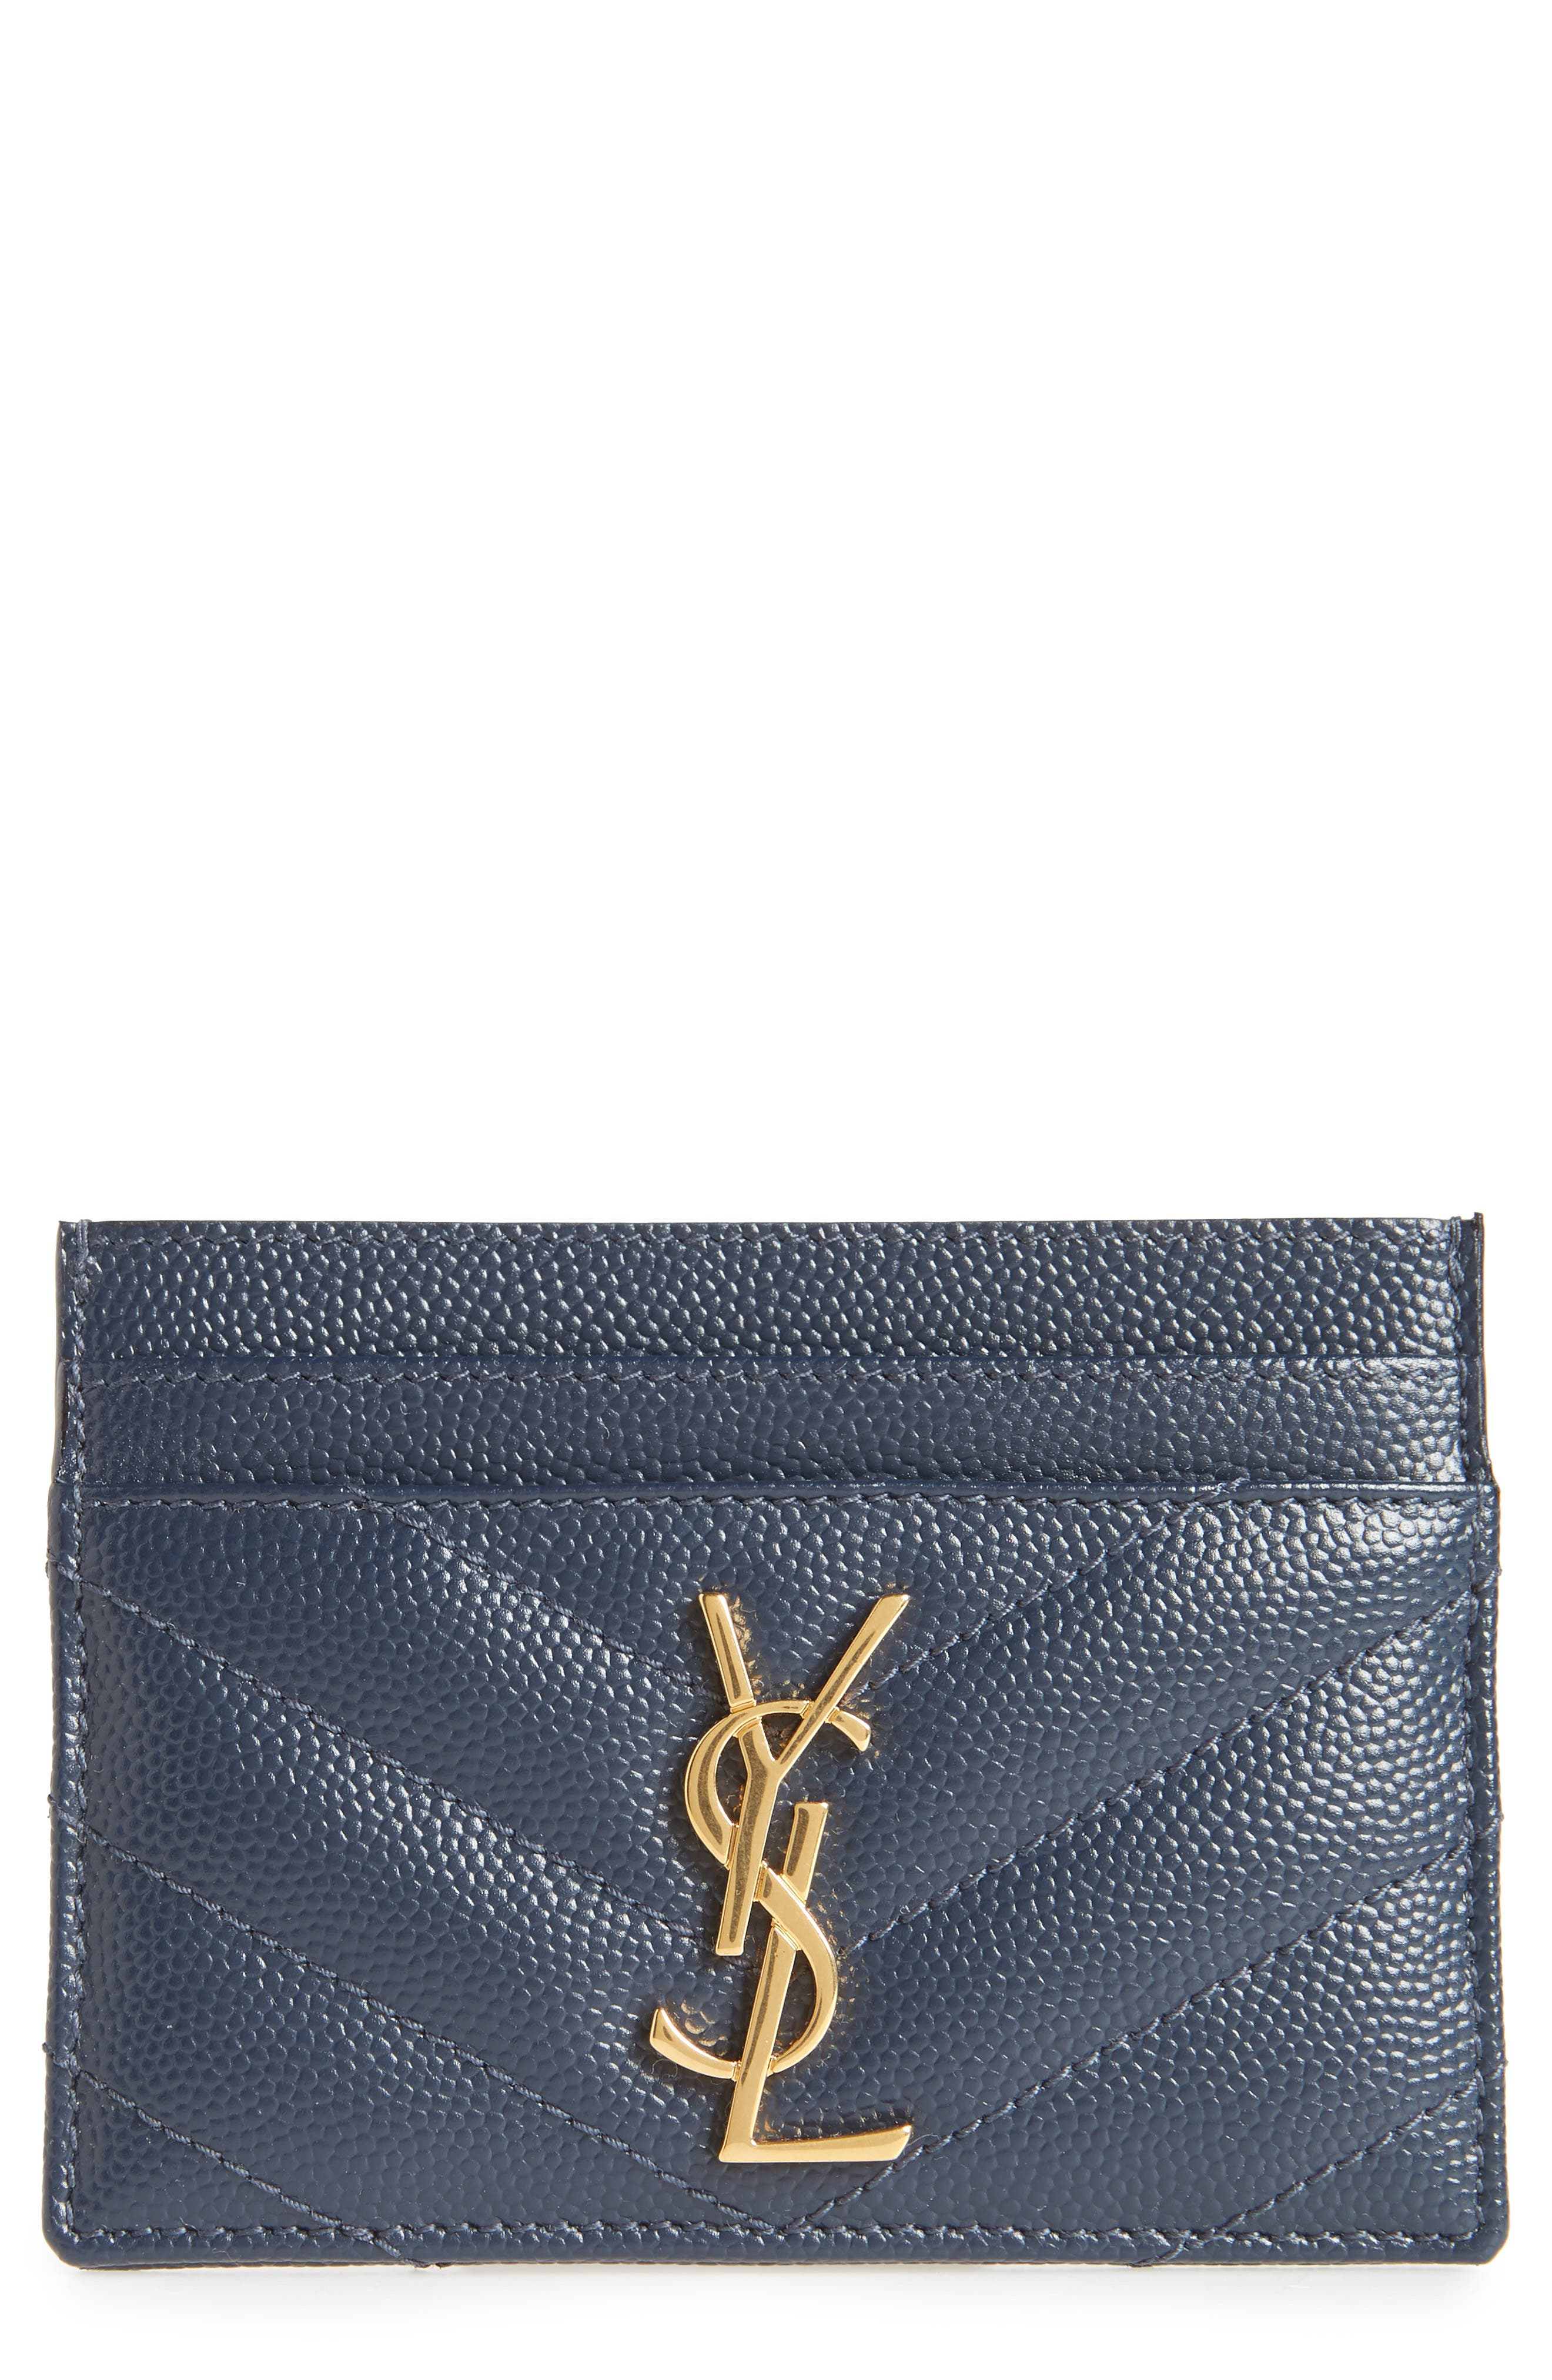 Monogram Quilted Leather Credit Card Case,                             Main thumbnail 1, color,                             NAVY